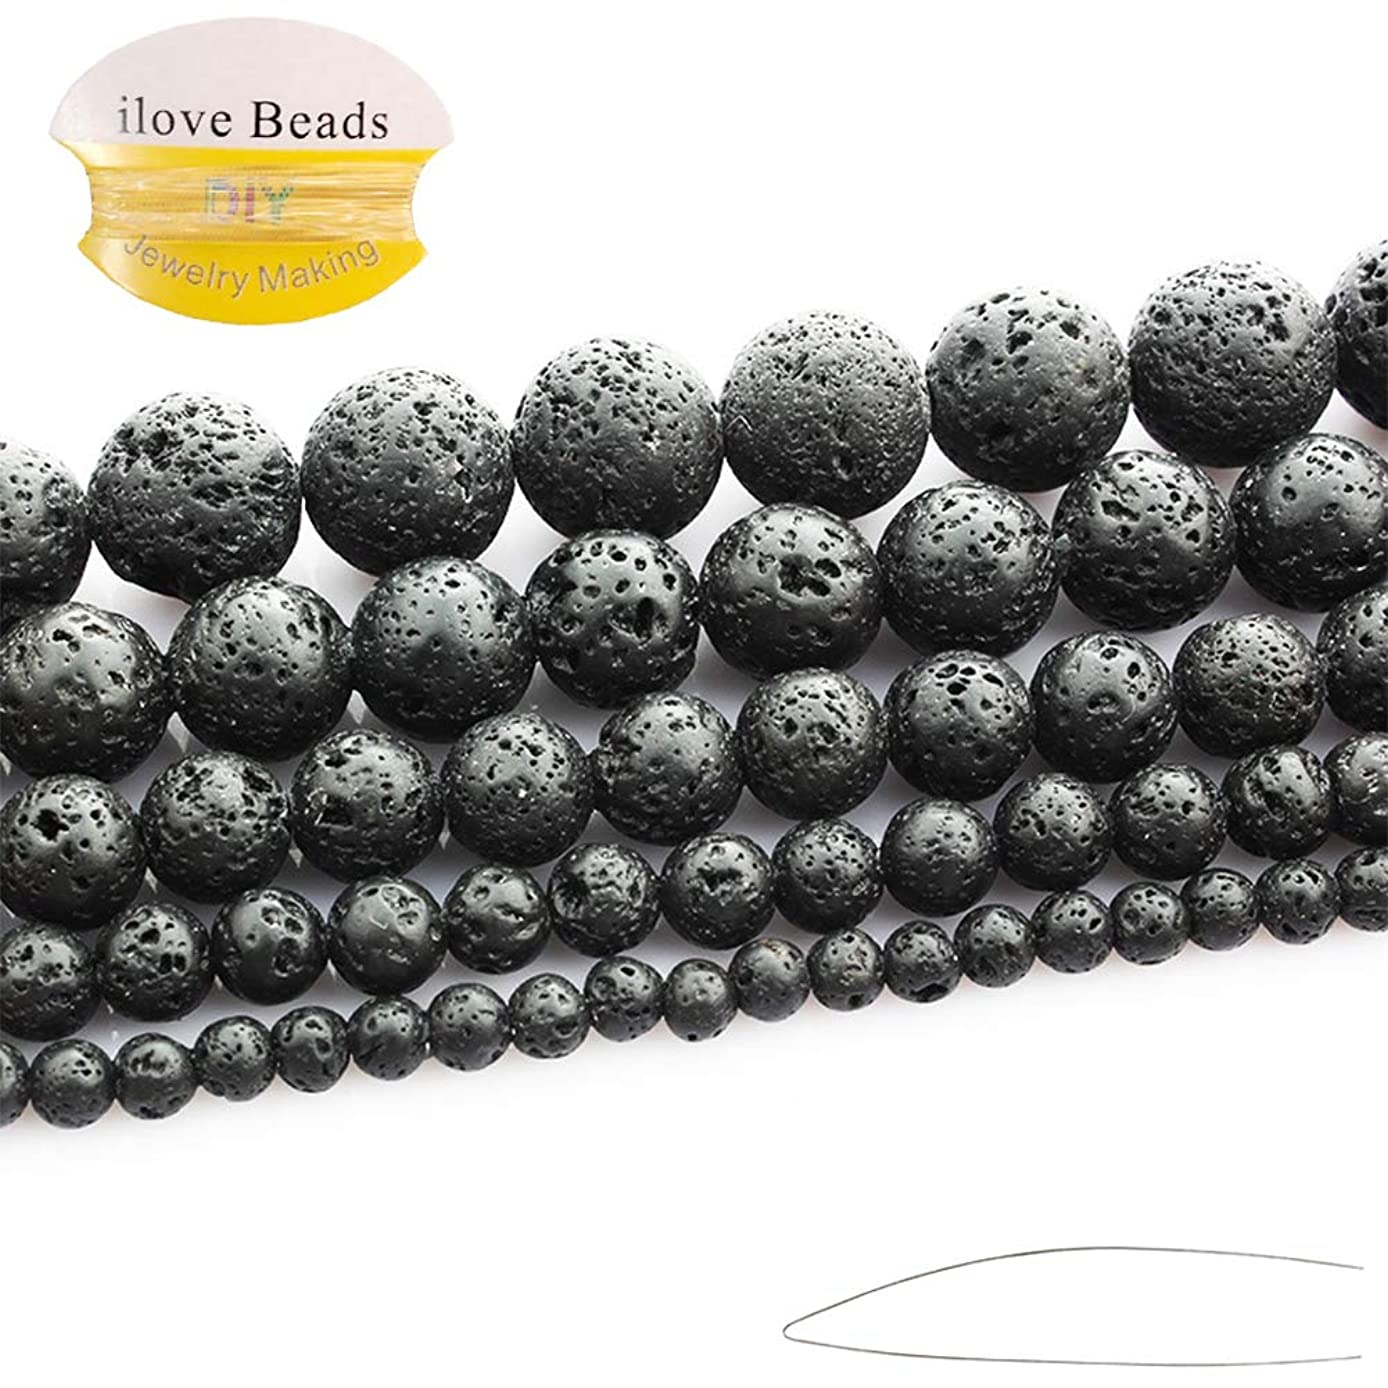 "ILVBD Natural Round Black Lava Stone Volcano Stone Loose Beads Bulk 4/6/8/10/12/14MM Wholesale for Jewelry Making 15"" (10MM)"